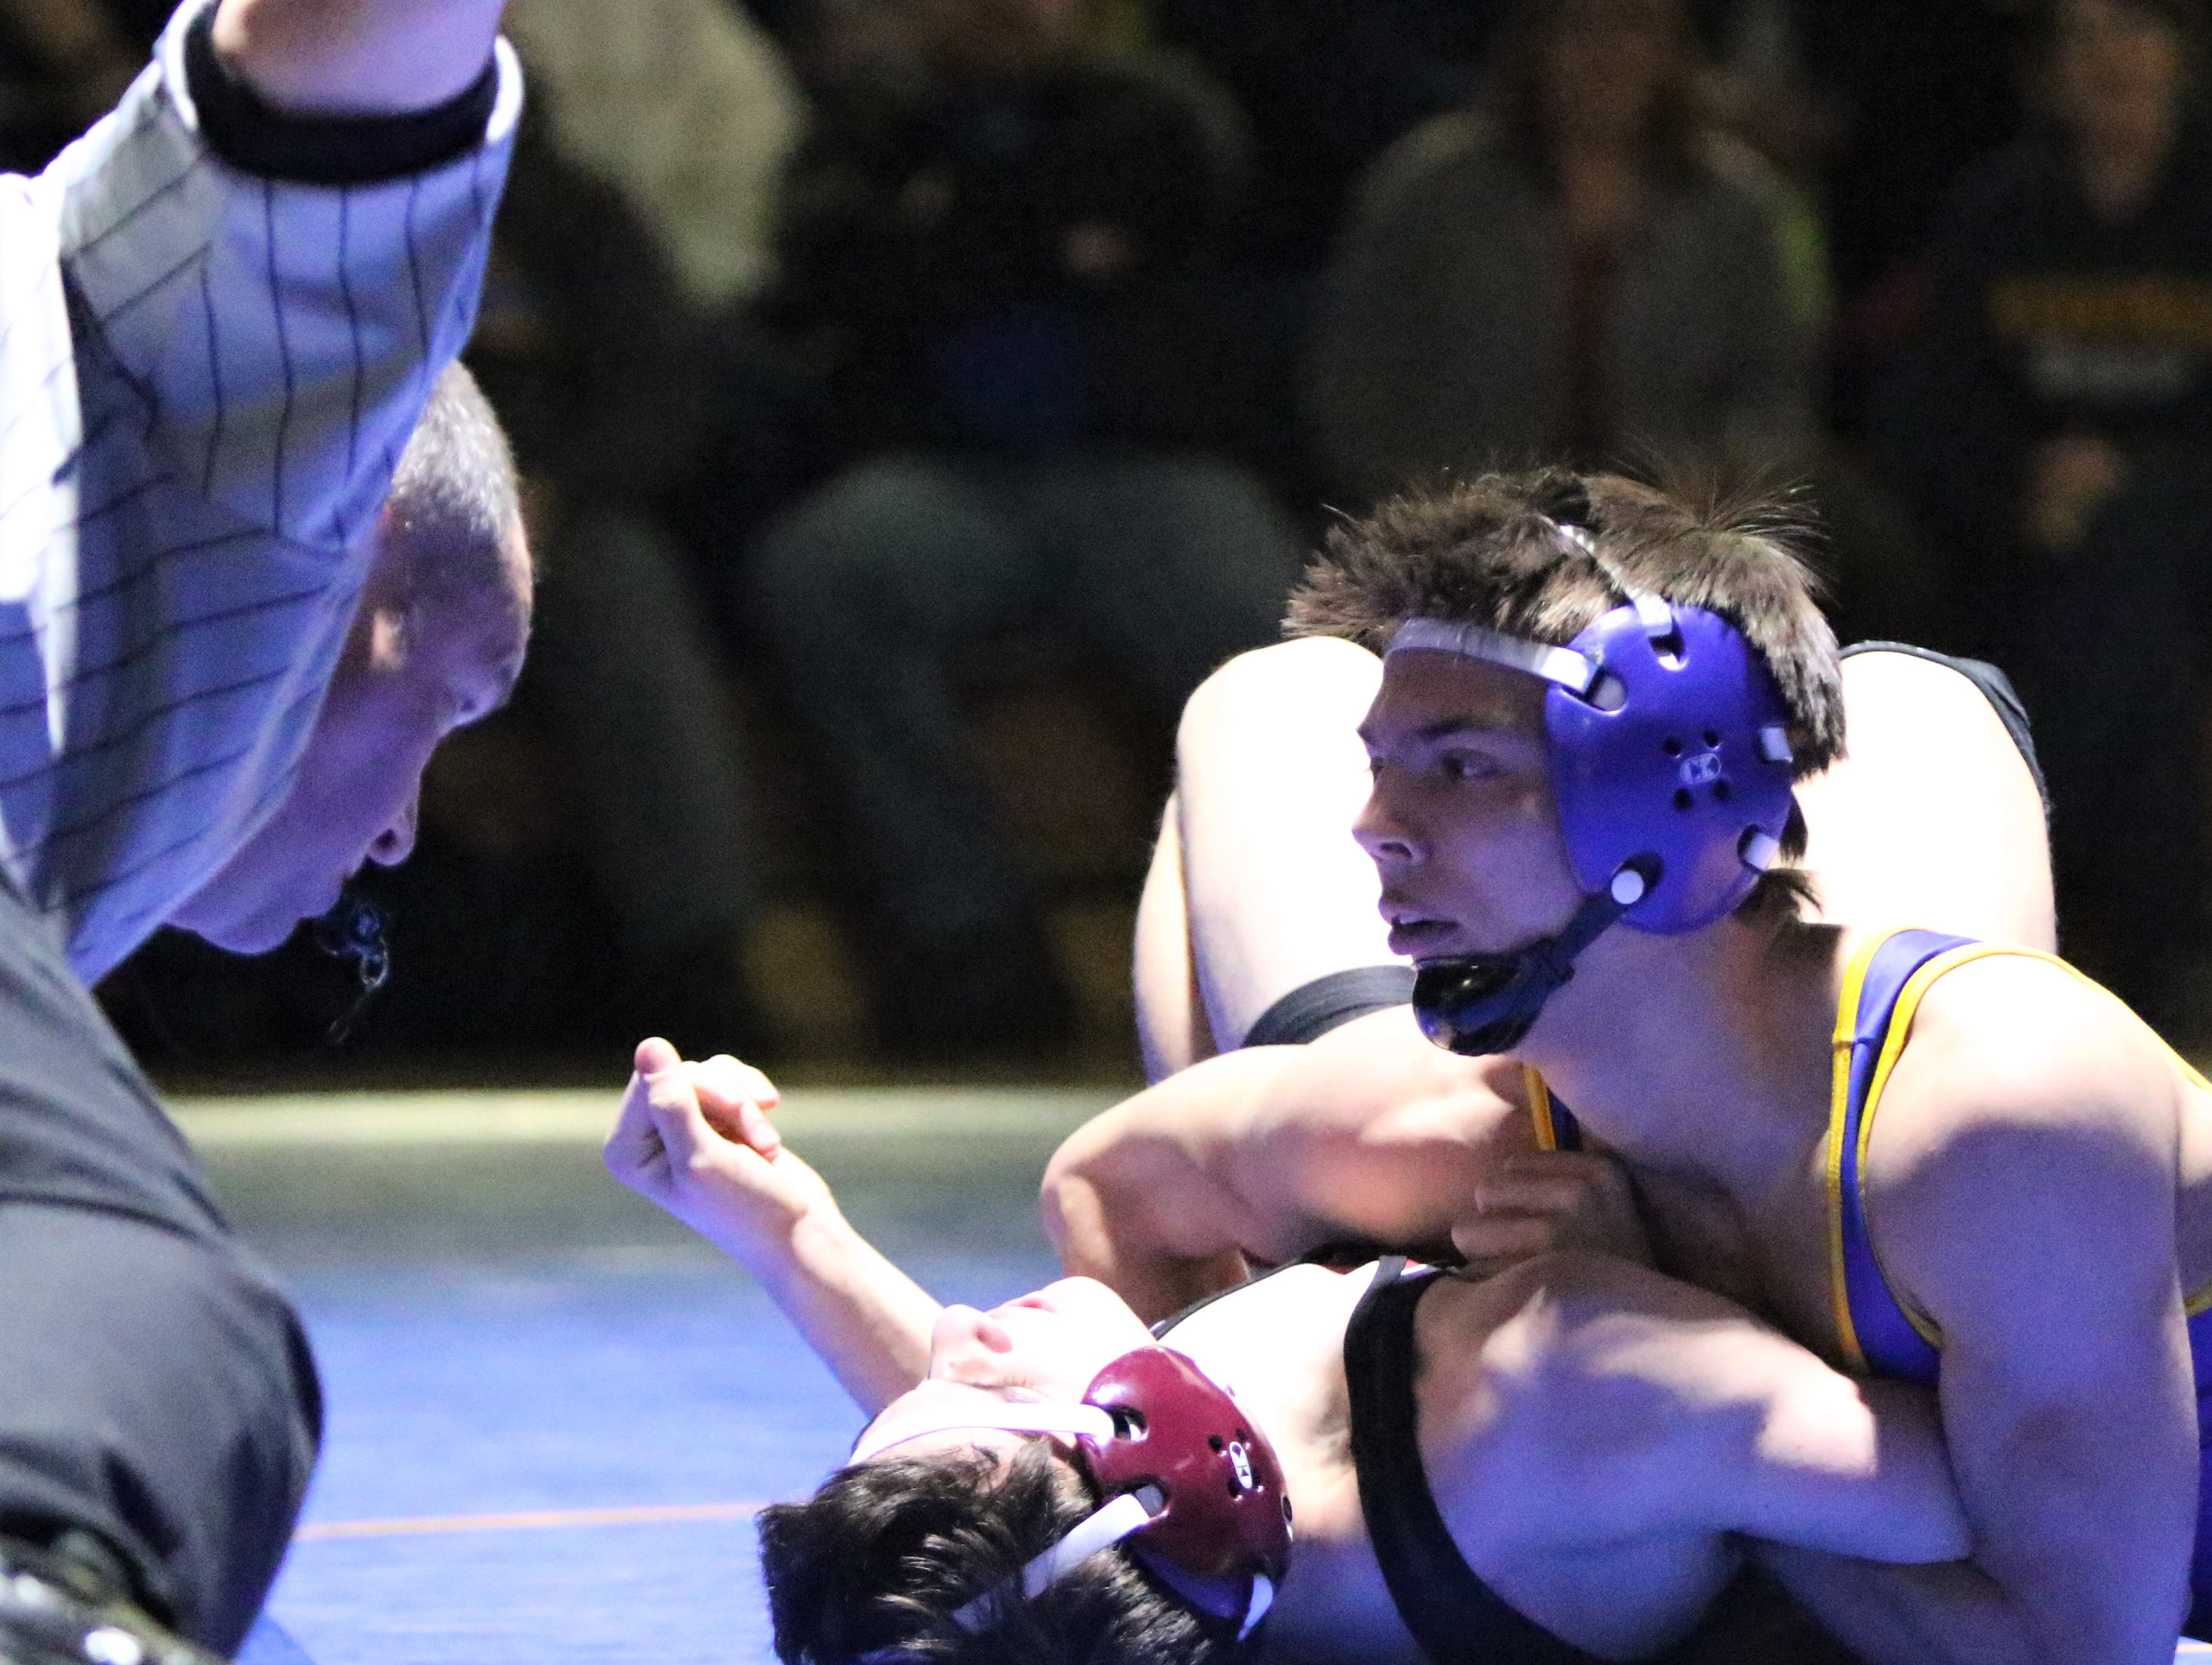 Mukwonago's Luke Eliszewski pins Wauwatosa's Luke Czaplewski in a 126-pound match in a WIAA sectional final on Feb. 13, 2019.